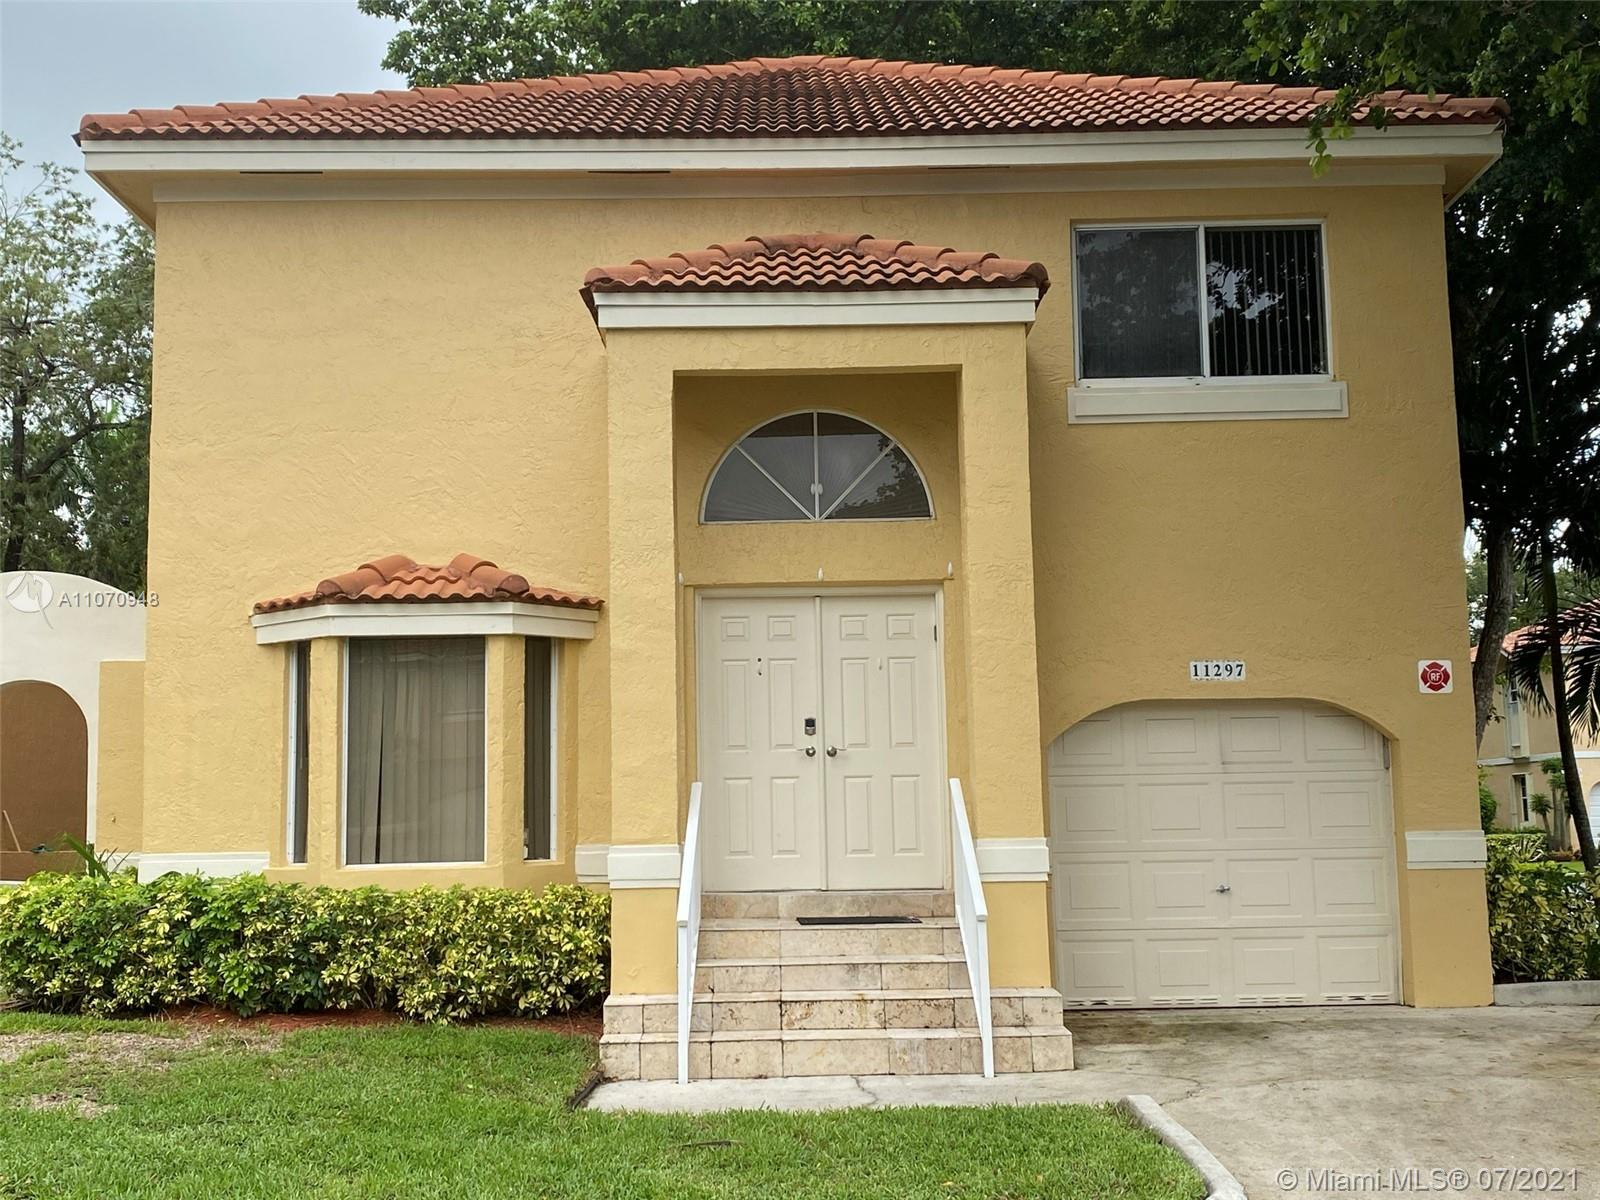 11297 Lakeview Dr, Coral Springs, Florida 33071